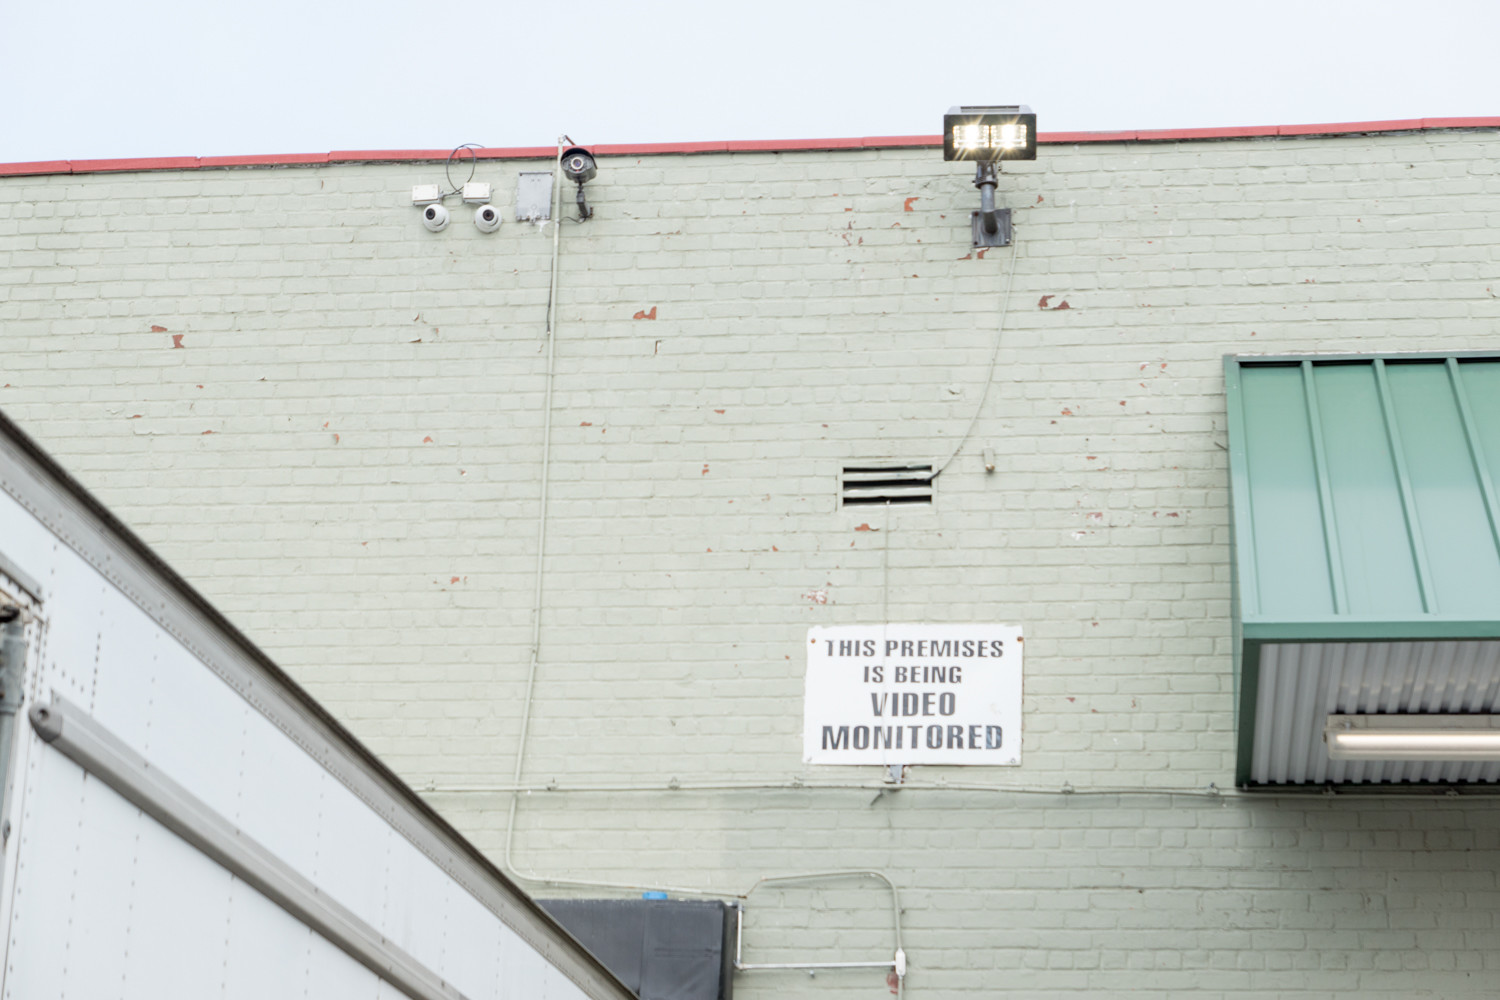 While there are security cameras outside the Key Food supermarket at 540 W. 235th St., there are none inside.